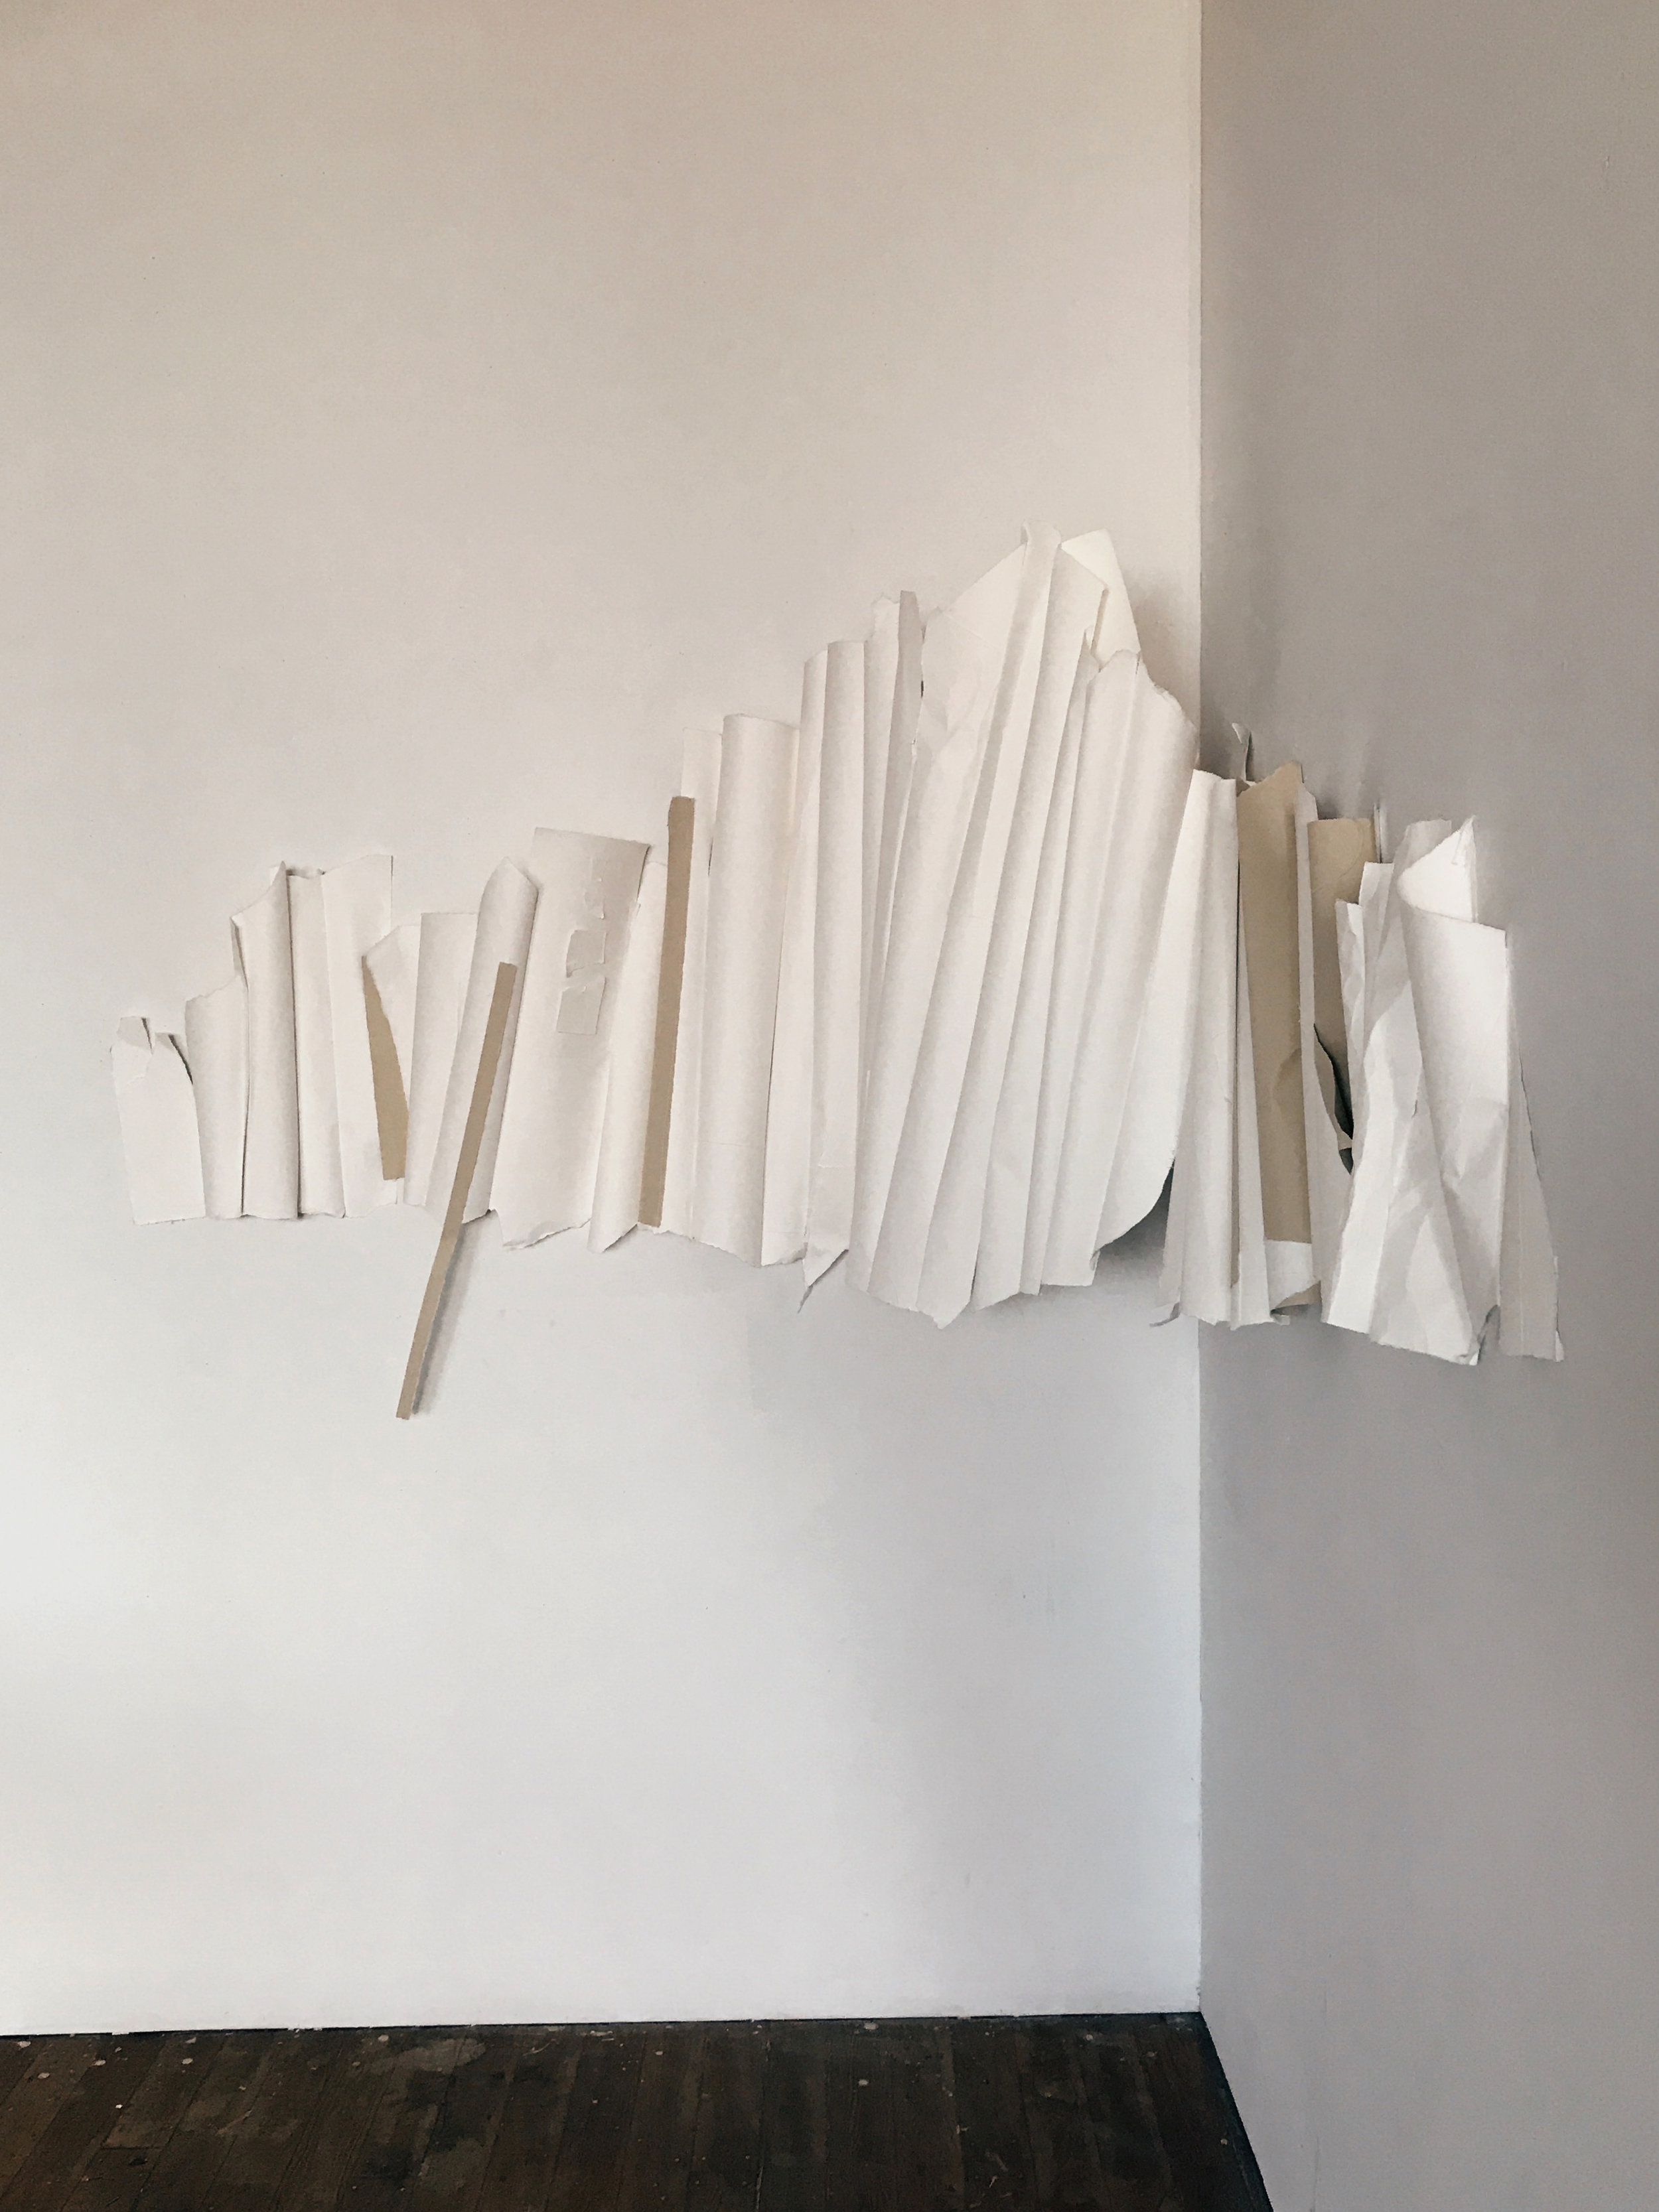 It's Better This Way (Alternate View)  Paper and thread  2018